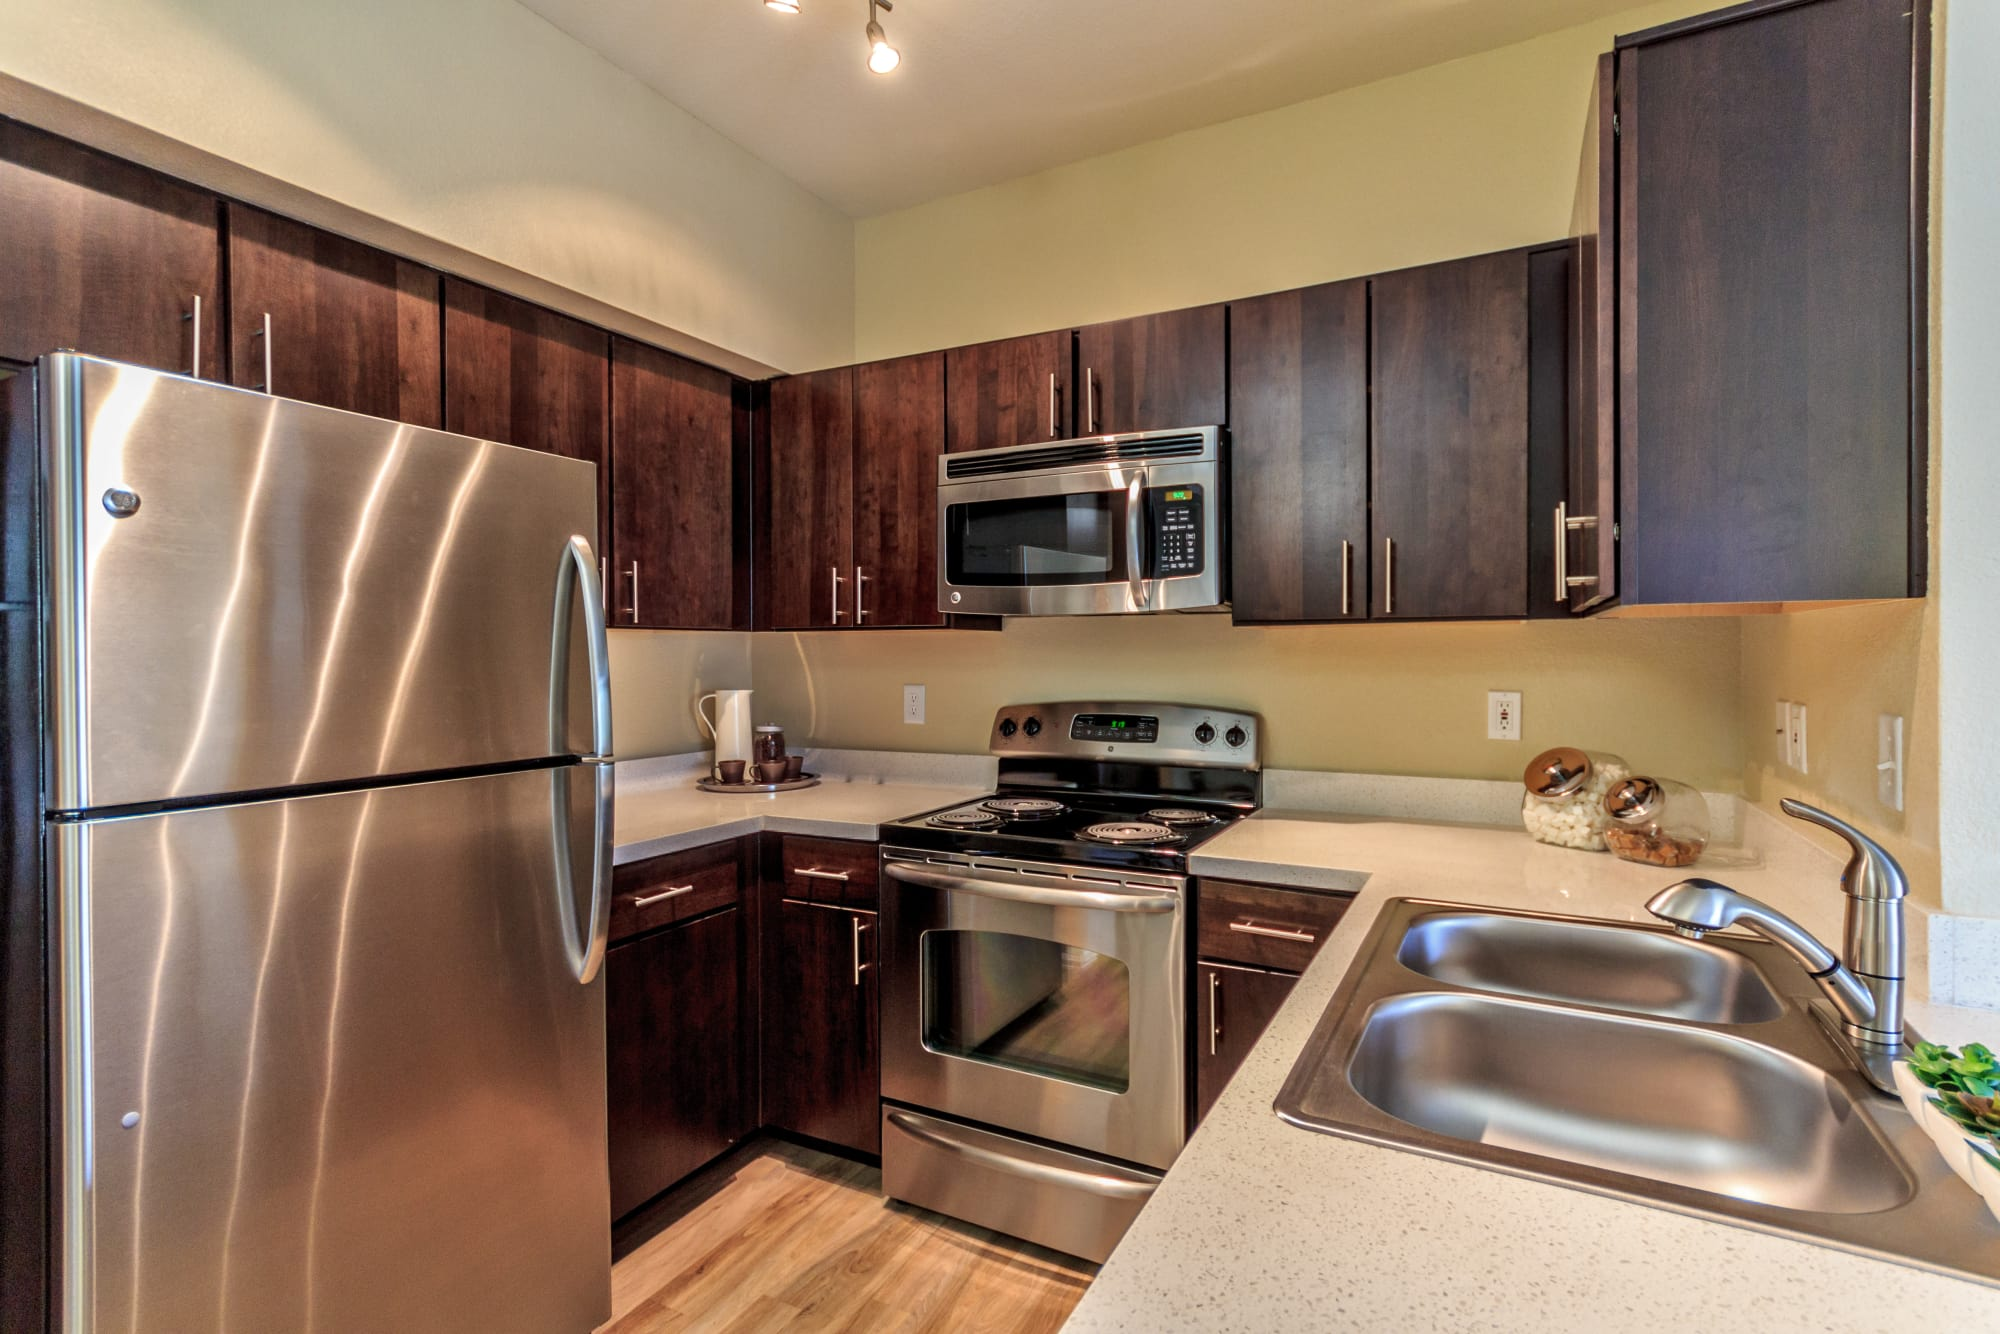 renovated brown kitchen with stainless steel appliances